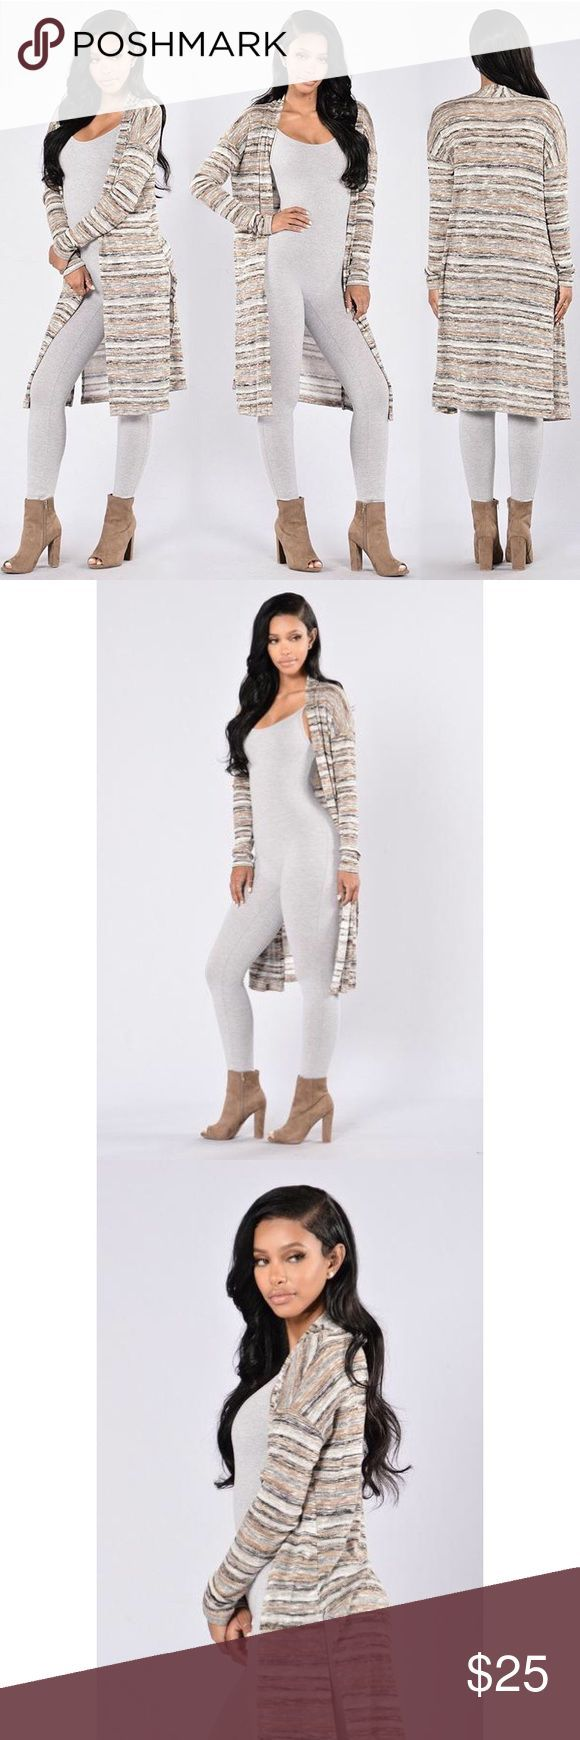 #Beautiful #Brand #Cardigan #Comfy #cozy #cozy Rainy Day Outfit #days #Long #Mondays #Rainy Rainy Days and Mondays Long Cardigan ✨Beautiful, Brand New, Comfy & Cozy✨ R... #rainydayoutfitforwork